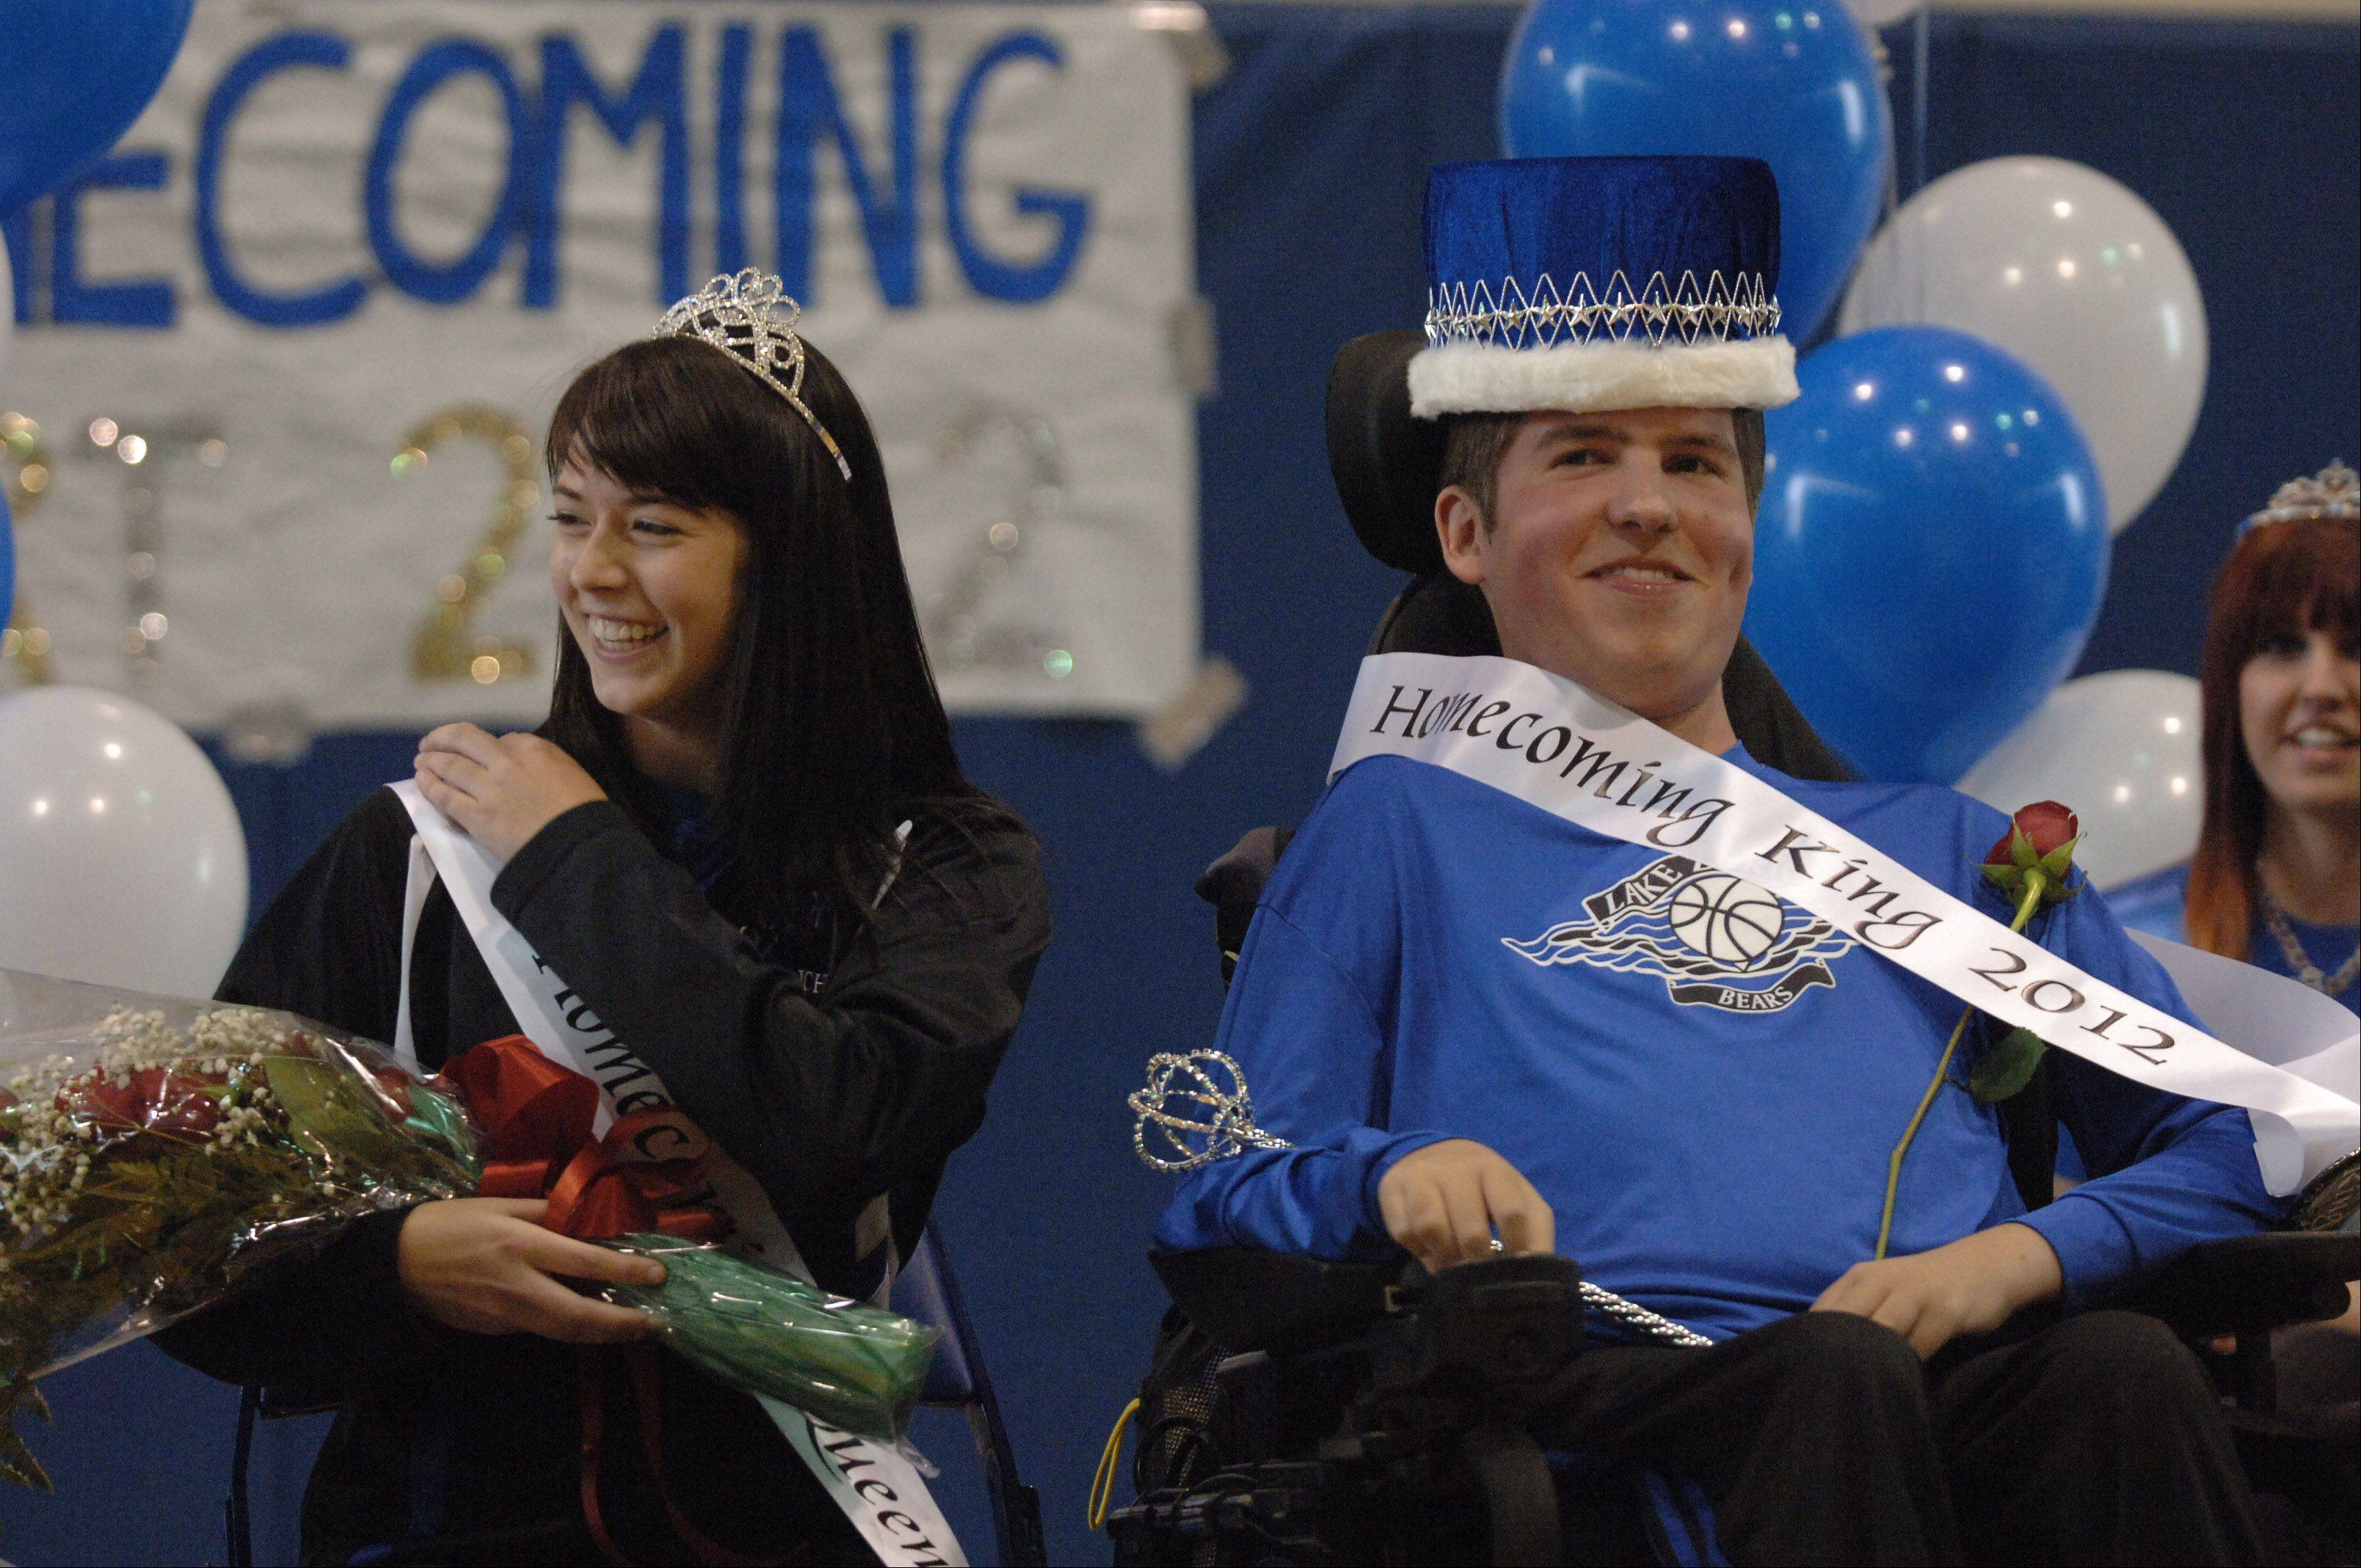 Rachel Spatz and Casey Scott were crowned as homecoming queen and king at Lake Zurich High School's homecoming pep assembly.